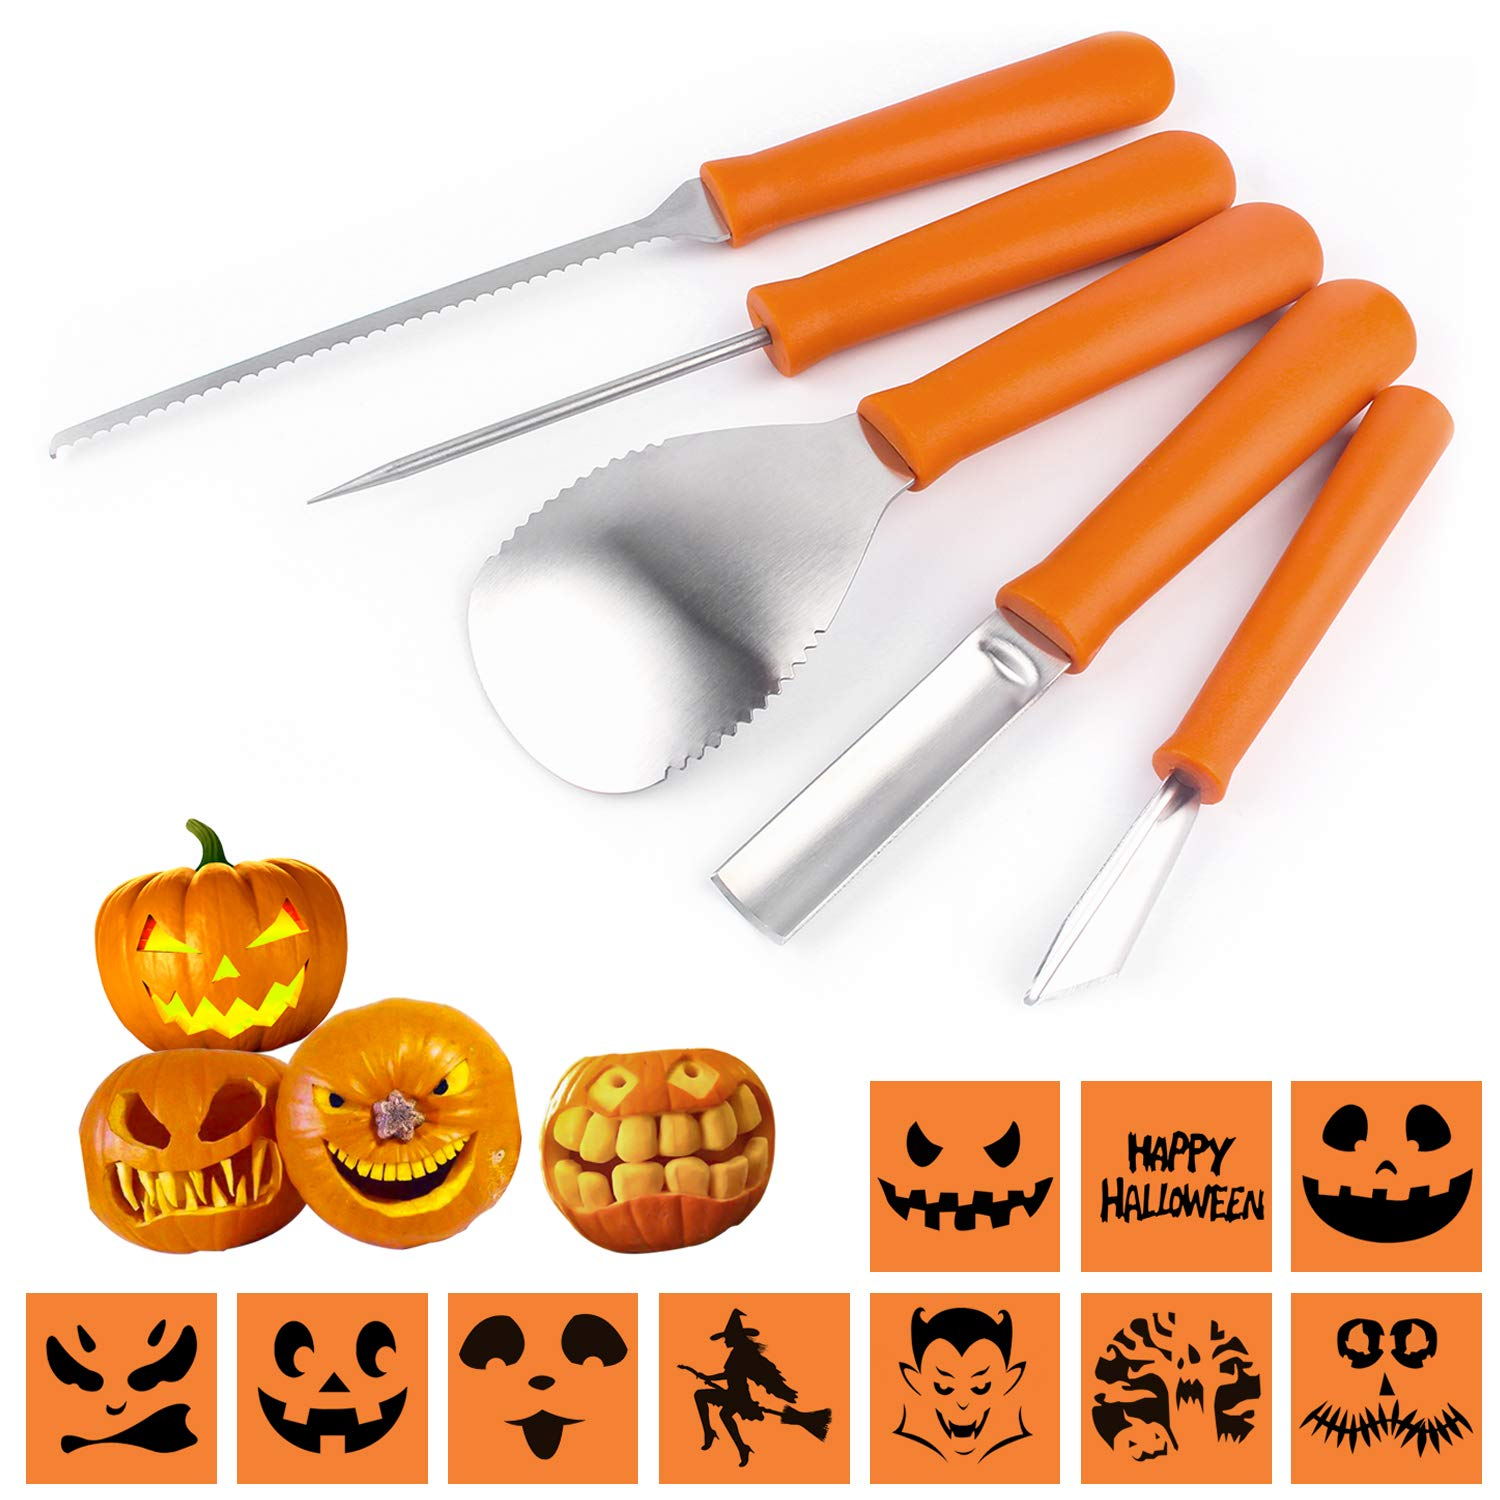 Halloween Pumpkin Carving Kit DIY Fruits Vegetables Pumpkin Lamp,Set of 5 Pieces Stainless Steel Kitchenware FINAL BASE